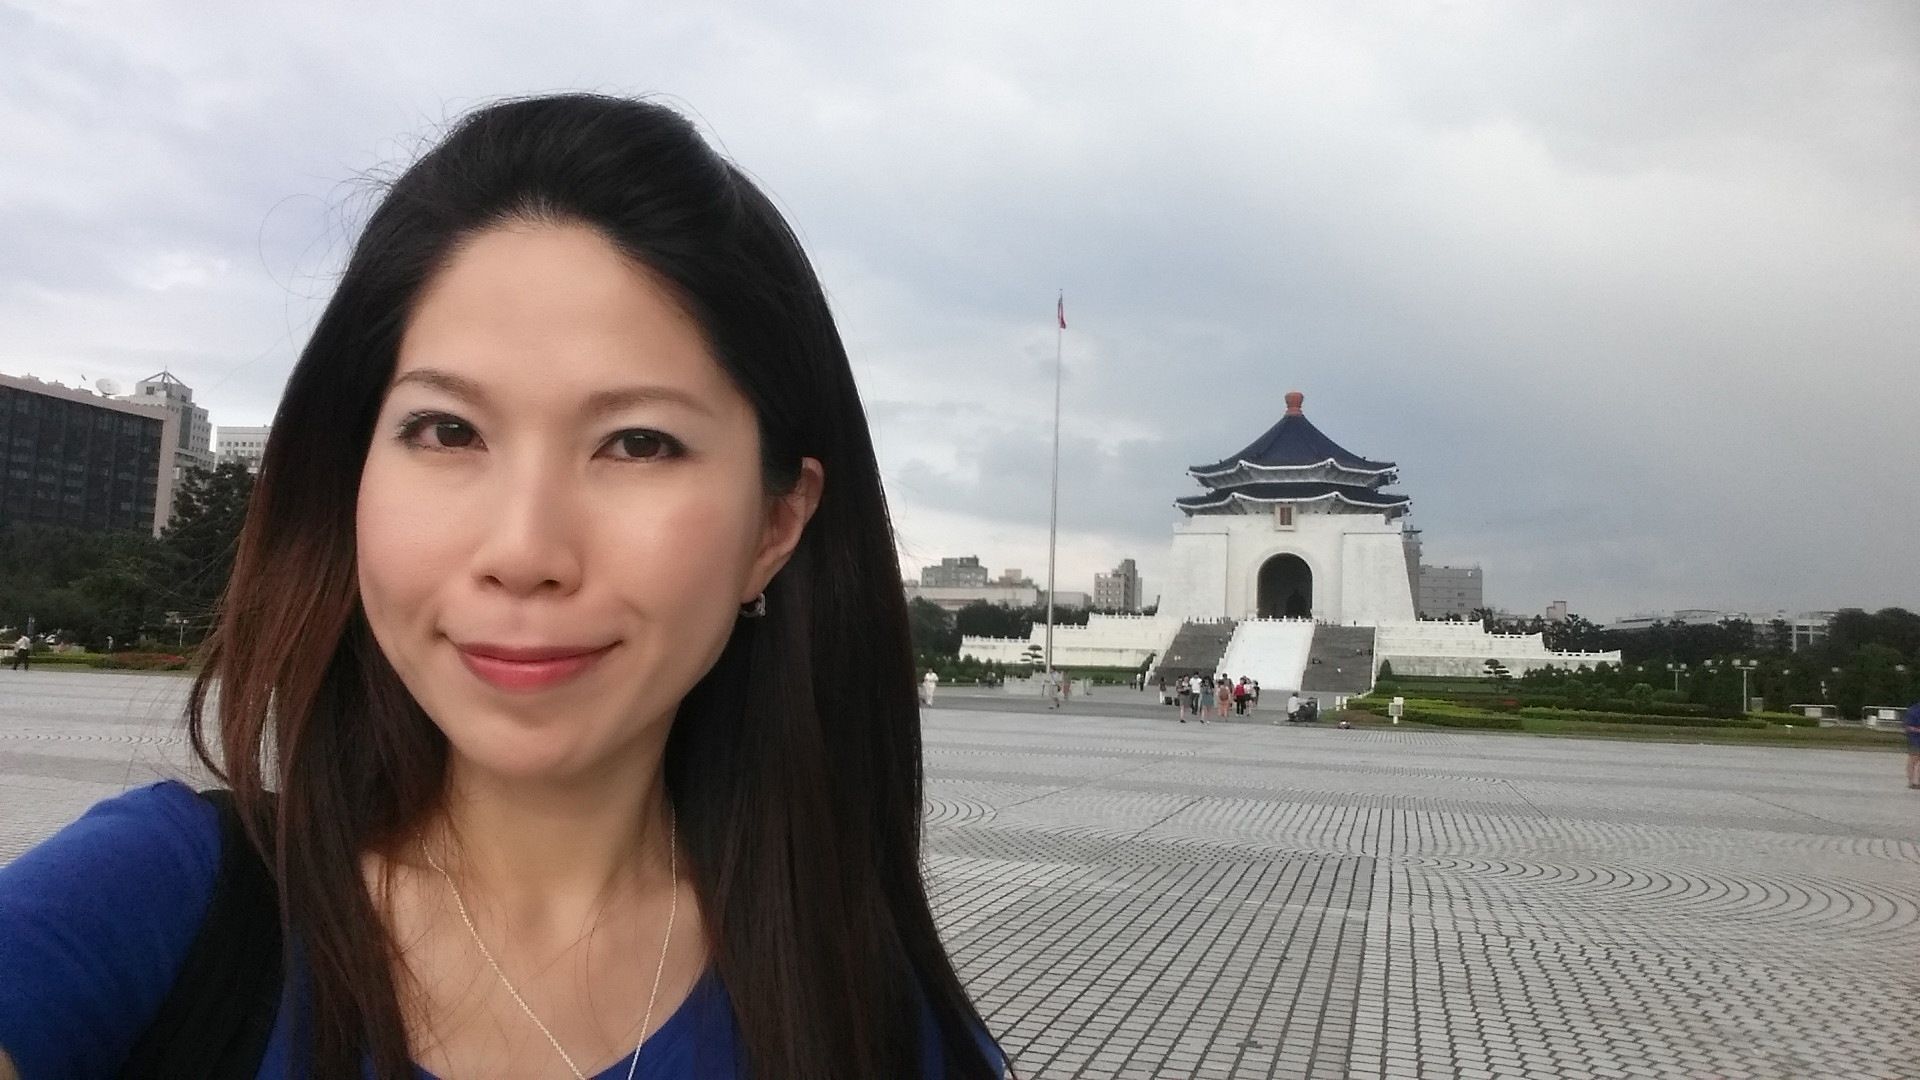 Female Solo Traveler in Taiwan